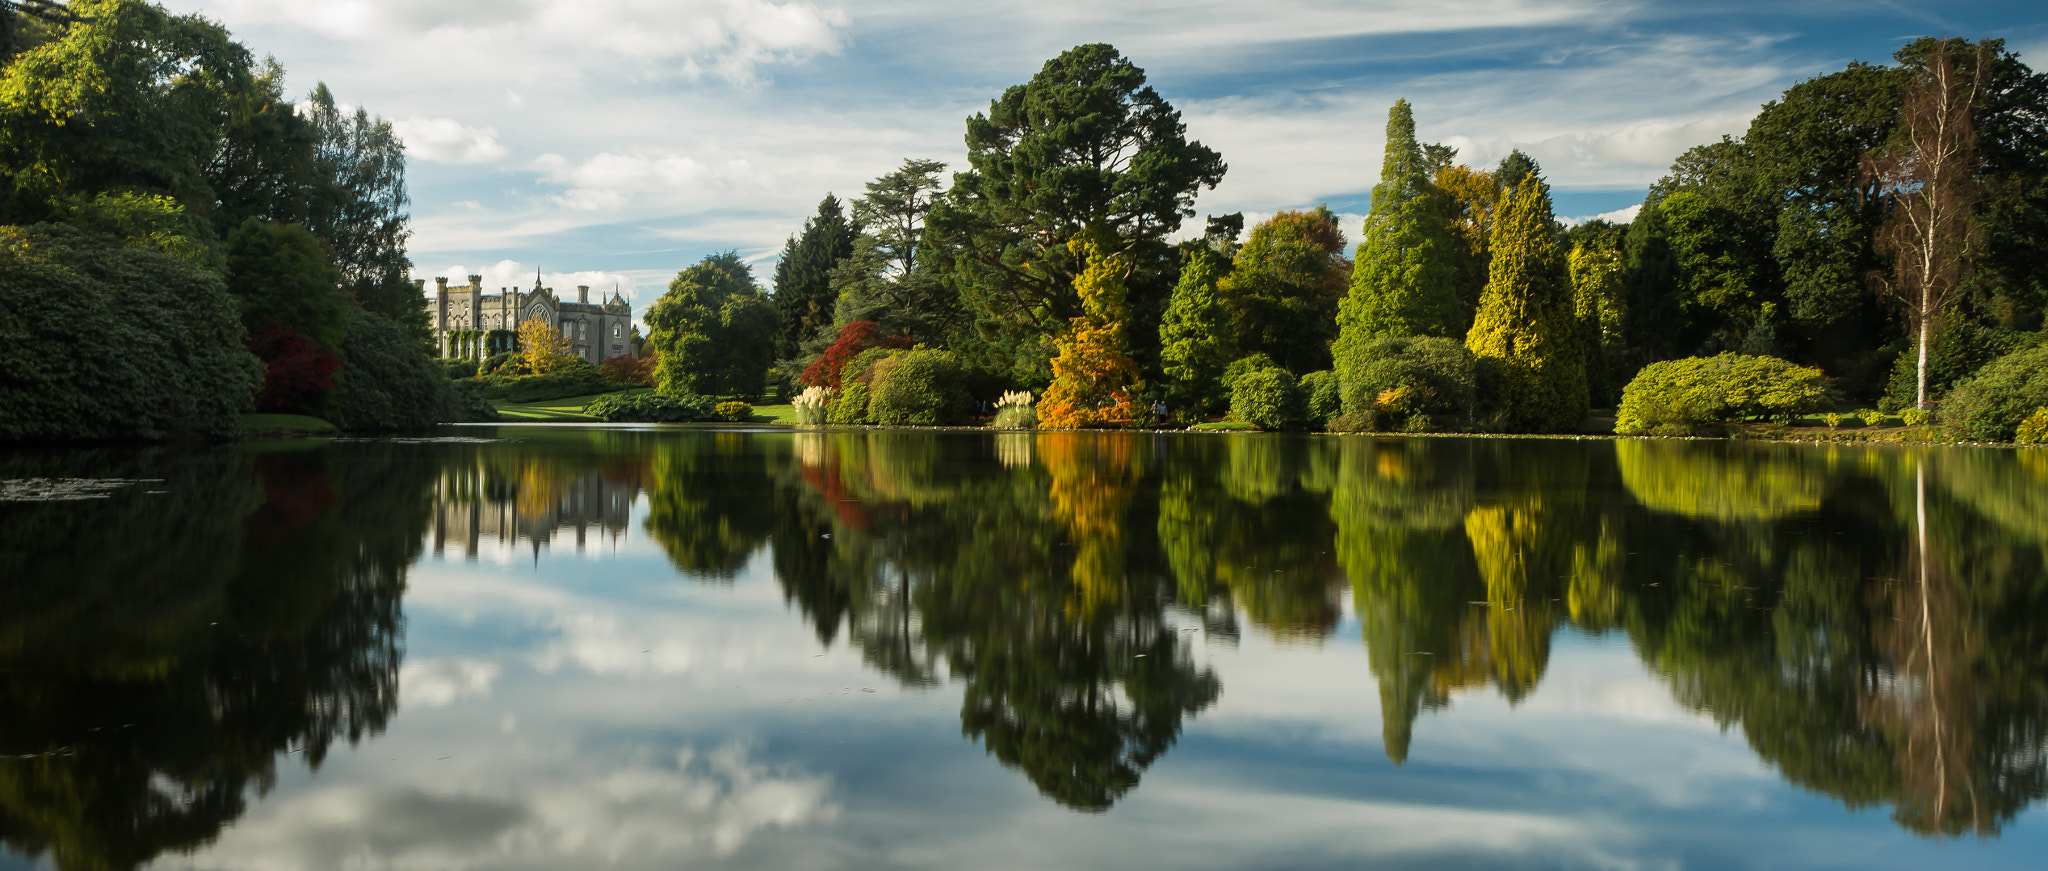 Photograph Sheffield Park and Garden by Mike Griggs on 500px